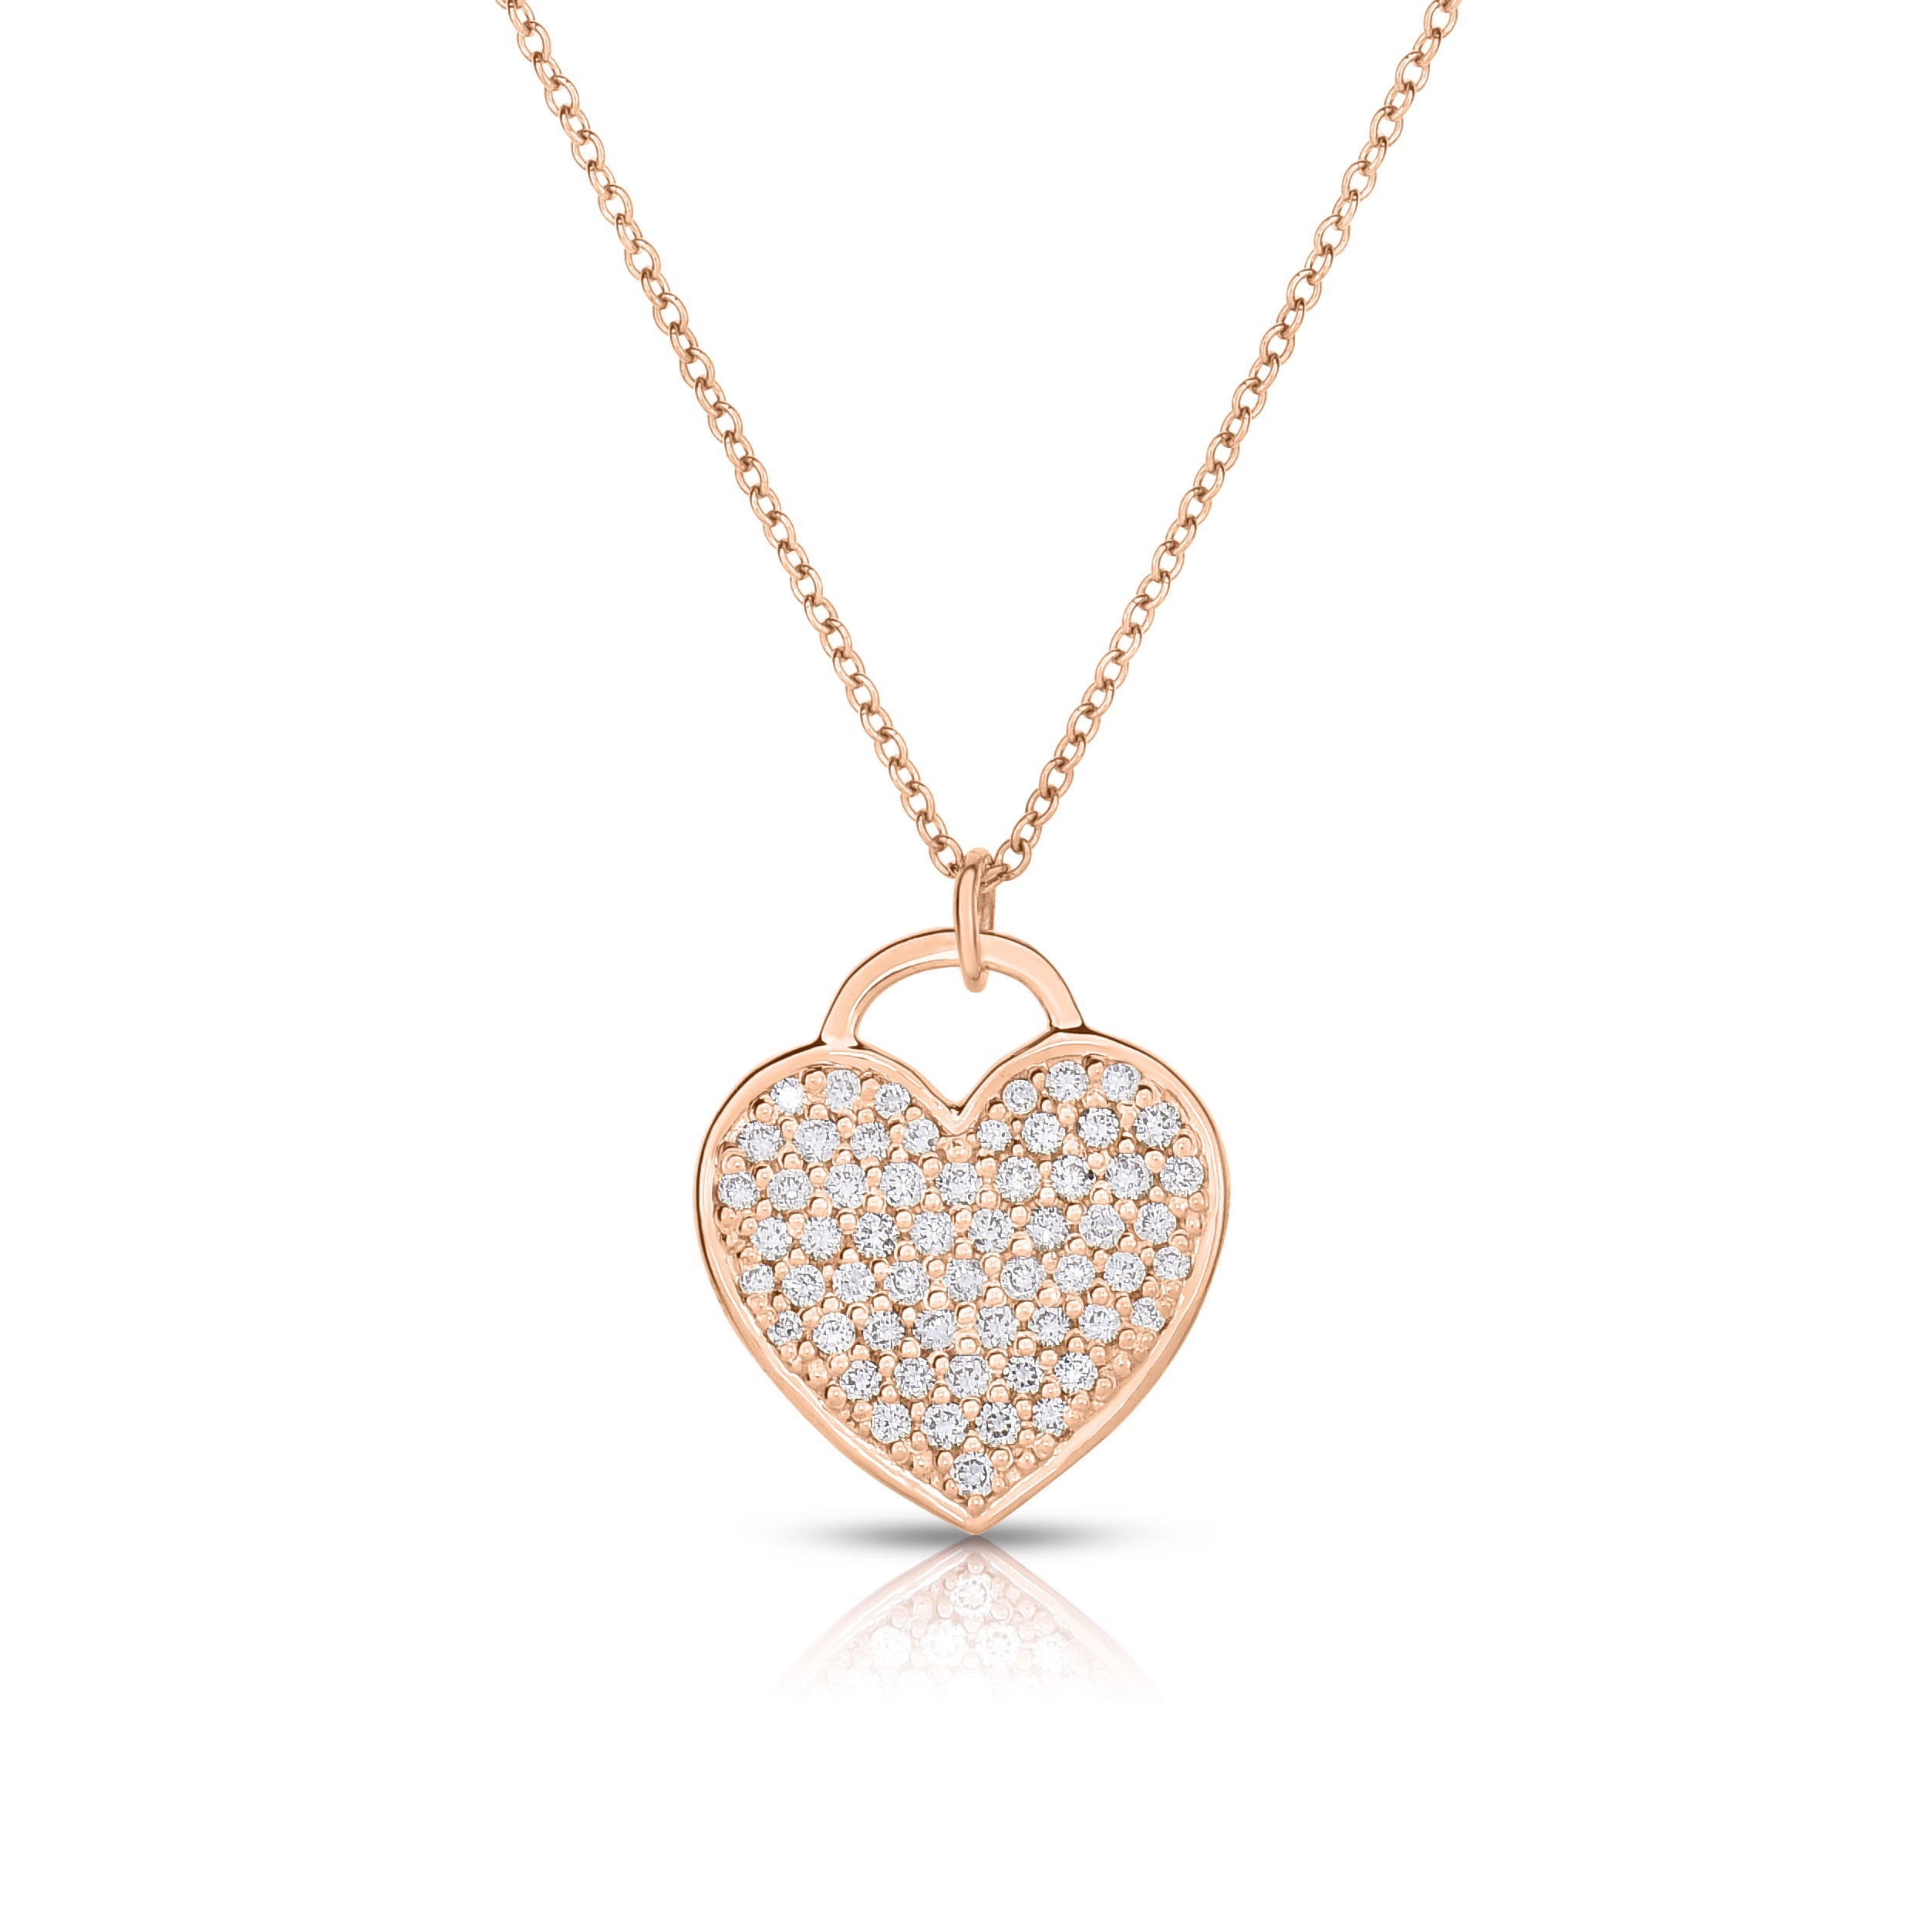 18K Rose Gold Love Bonds Pendant with Pave Lab-Grown Diamonds on AIDIA Extendable Link Chain